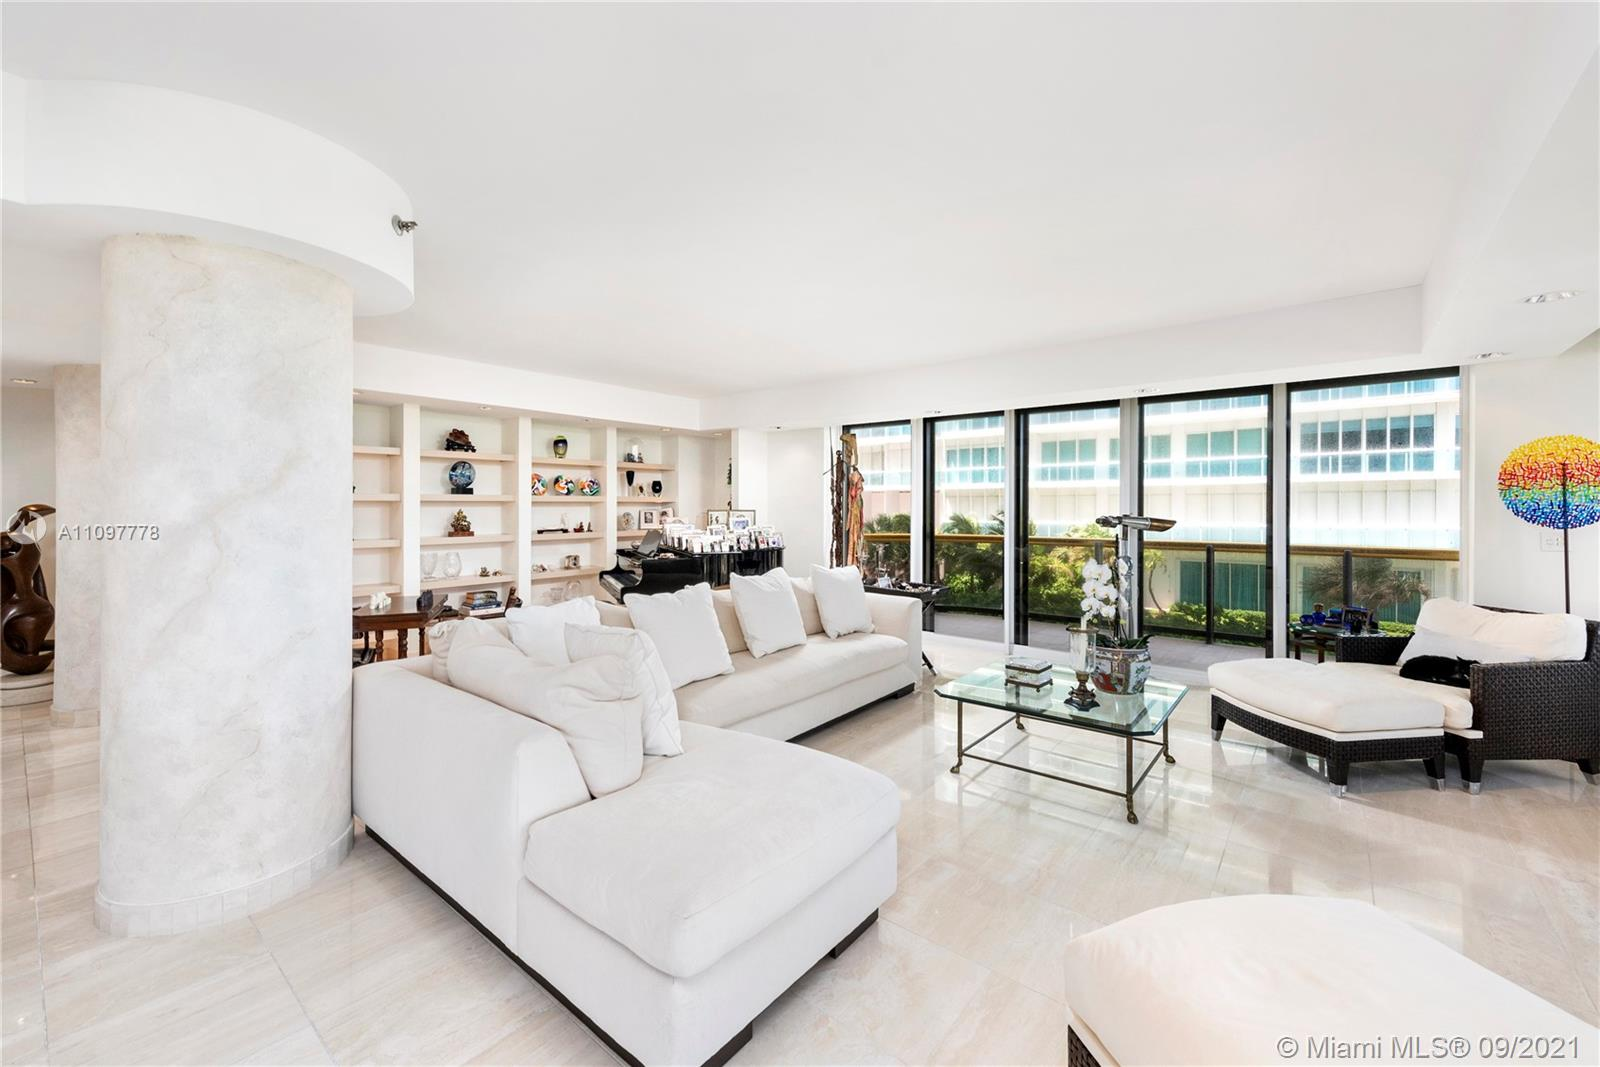 NE CORNER LISTING OFFERING FLOOR TO CEILING WINDOW OCEAN VIEWS OVER LUSHLY LANDSCAPED TREES AND GARDENS. BAL HARBOUR TOWERS IS A 5-STAR FULL SERVICE BUILDING WITH RESORT STYLE AMENITIES INCLUDING 24-HOUR SECURITY AND VALET SERVICE,GYM, TENNIS COURTS, POOL AND BEACH SERVICE AND A PRIVATE RESTAURANT. STEPS FROM WORLD-RENOWNED BAL HARBOUR SHOPS. GREAT VALUE!